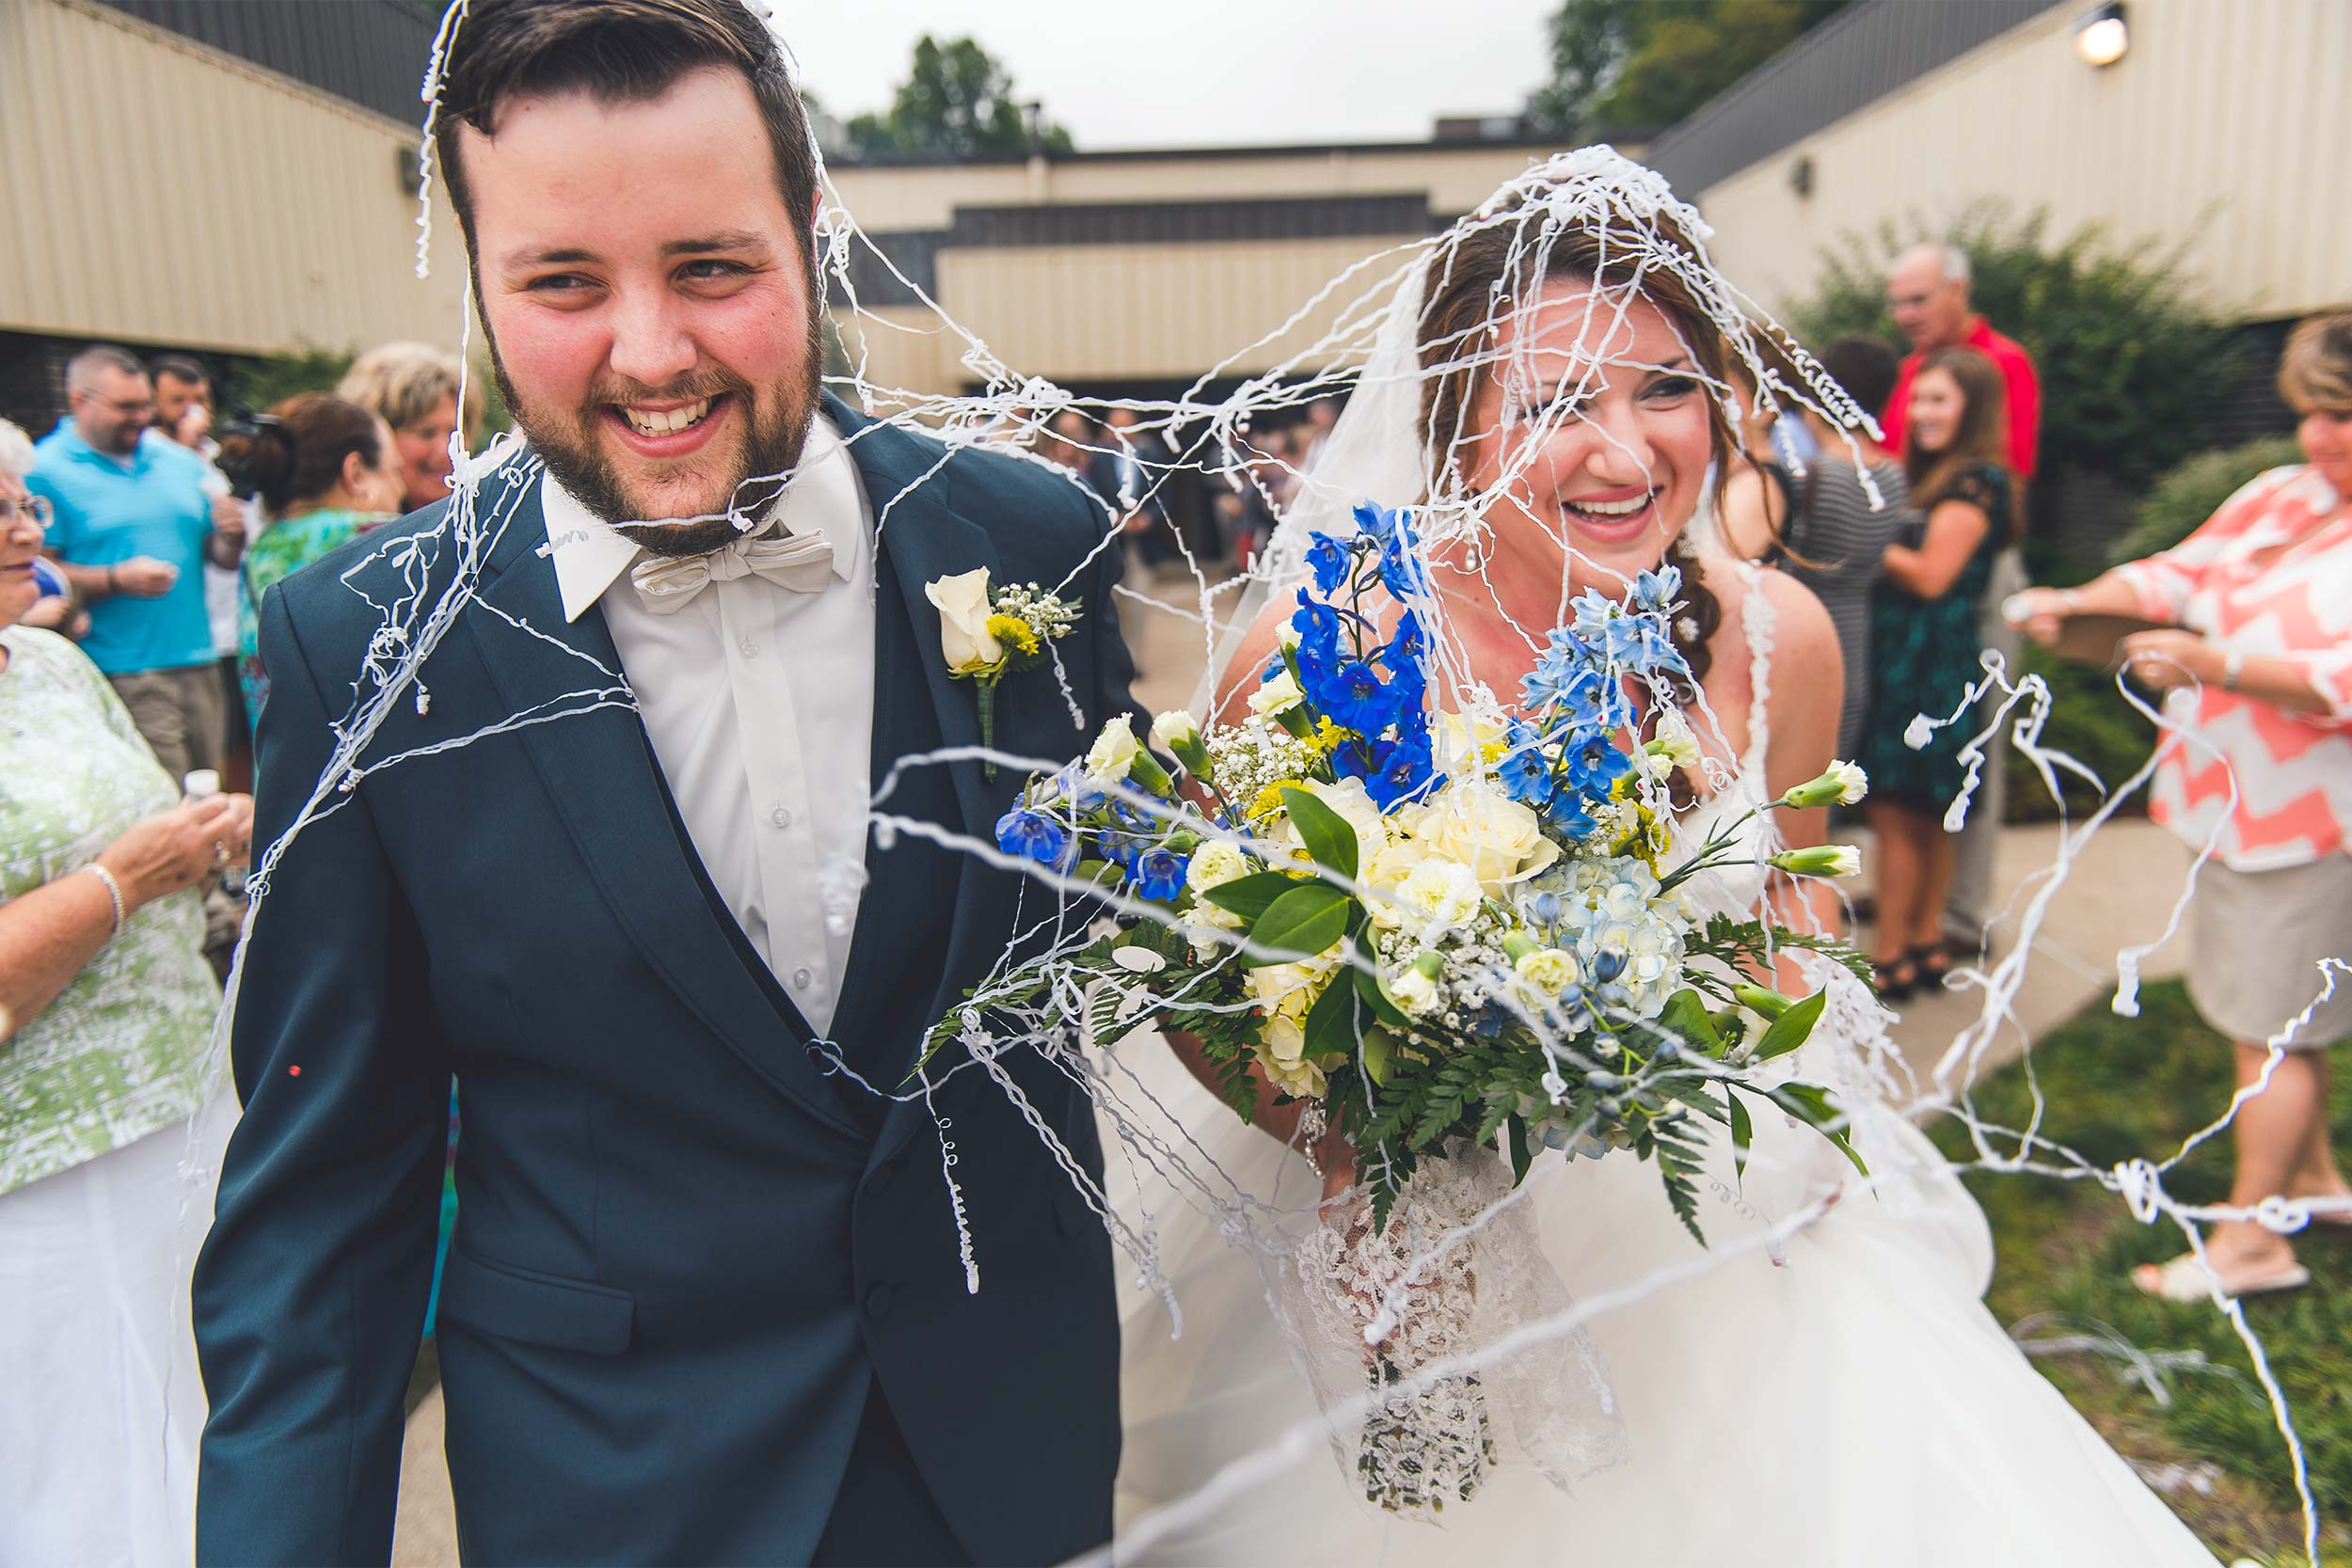 hilarious-wedding-silly-string-couple.jpg